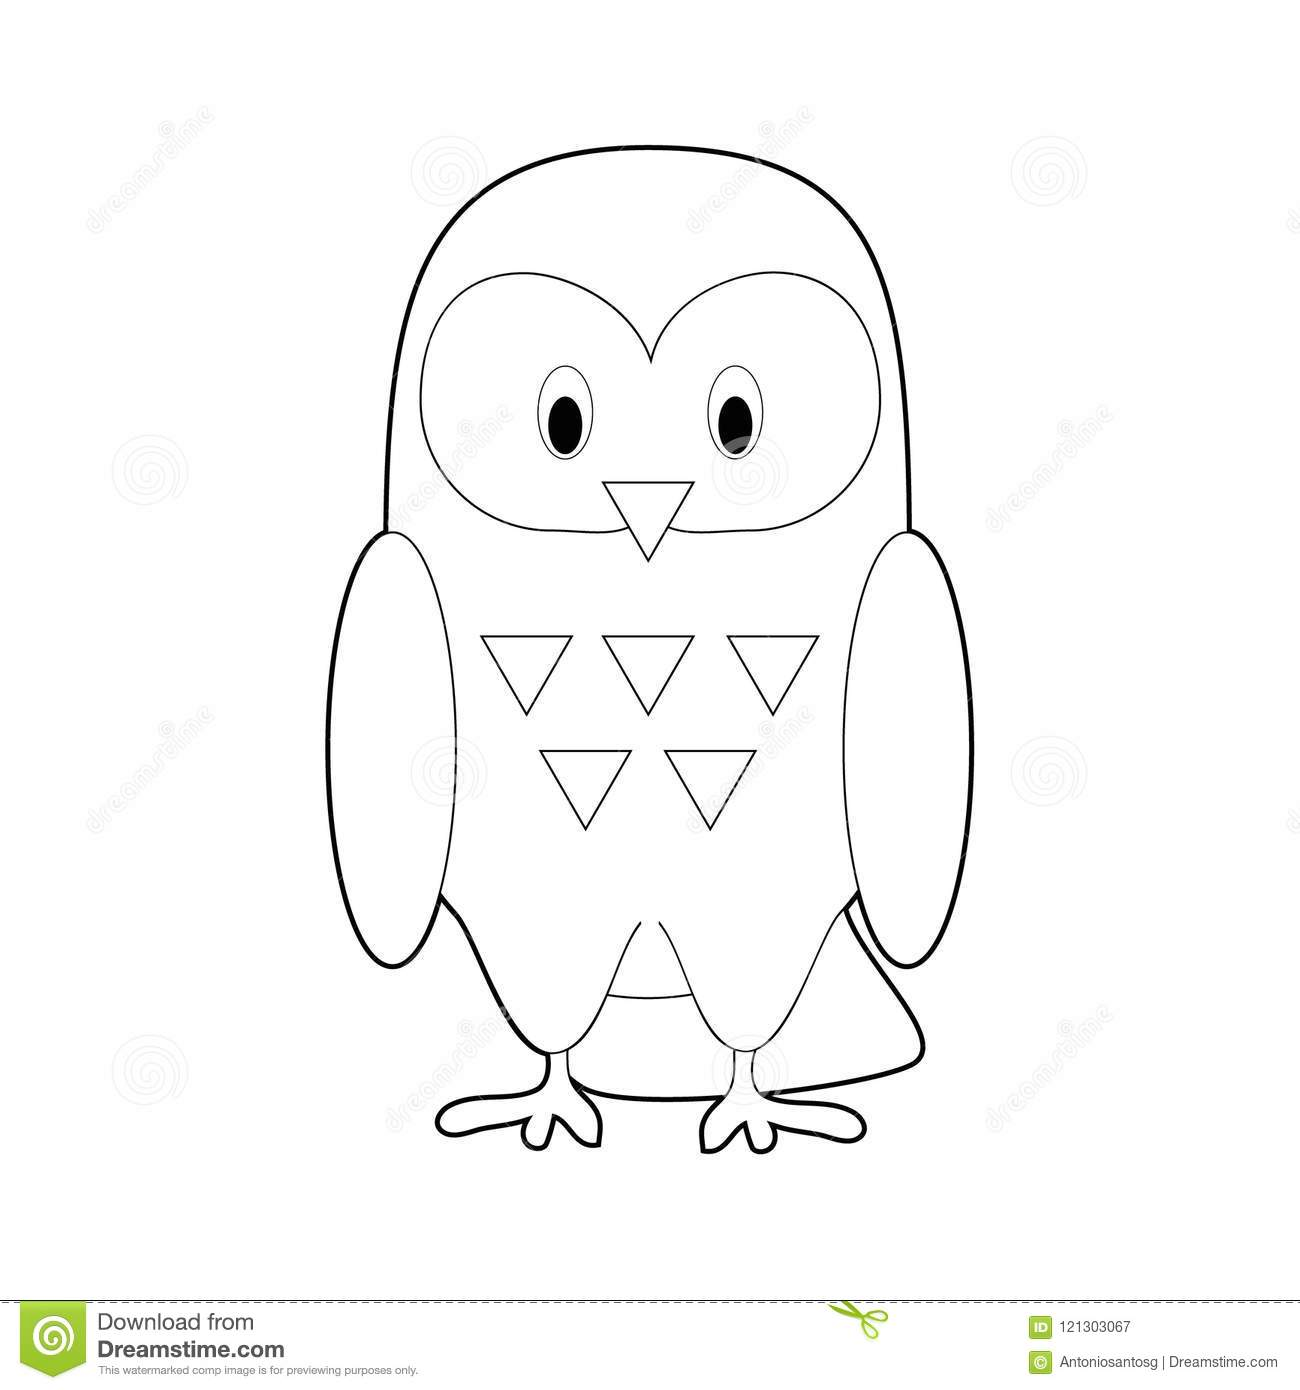 Easy Coloring Animals For Kids: Snowy Owl Stock Vector